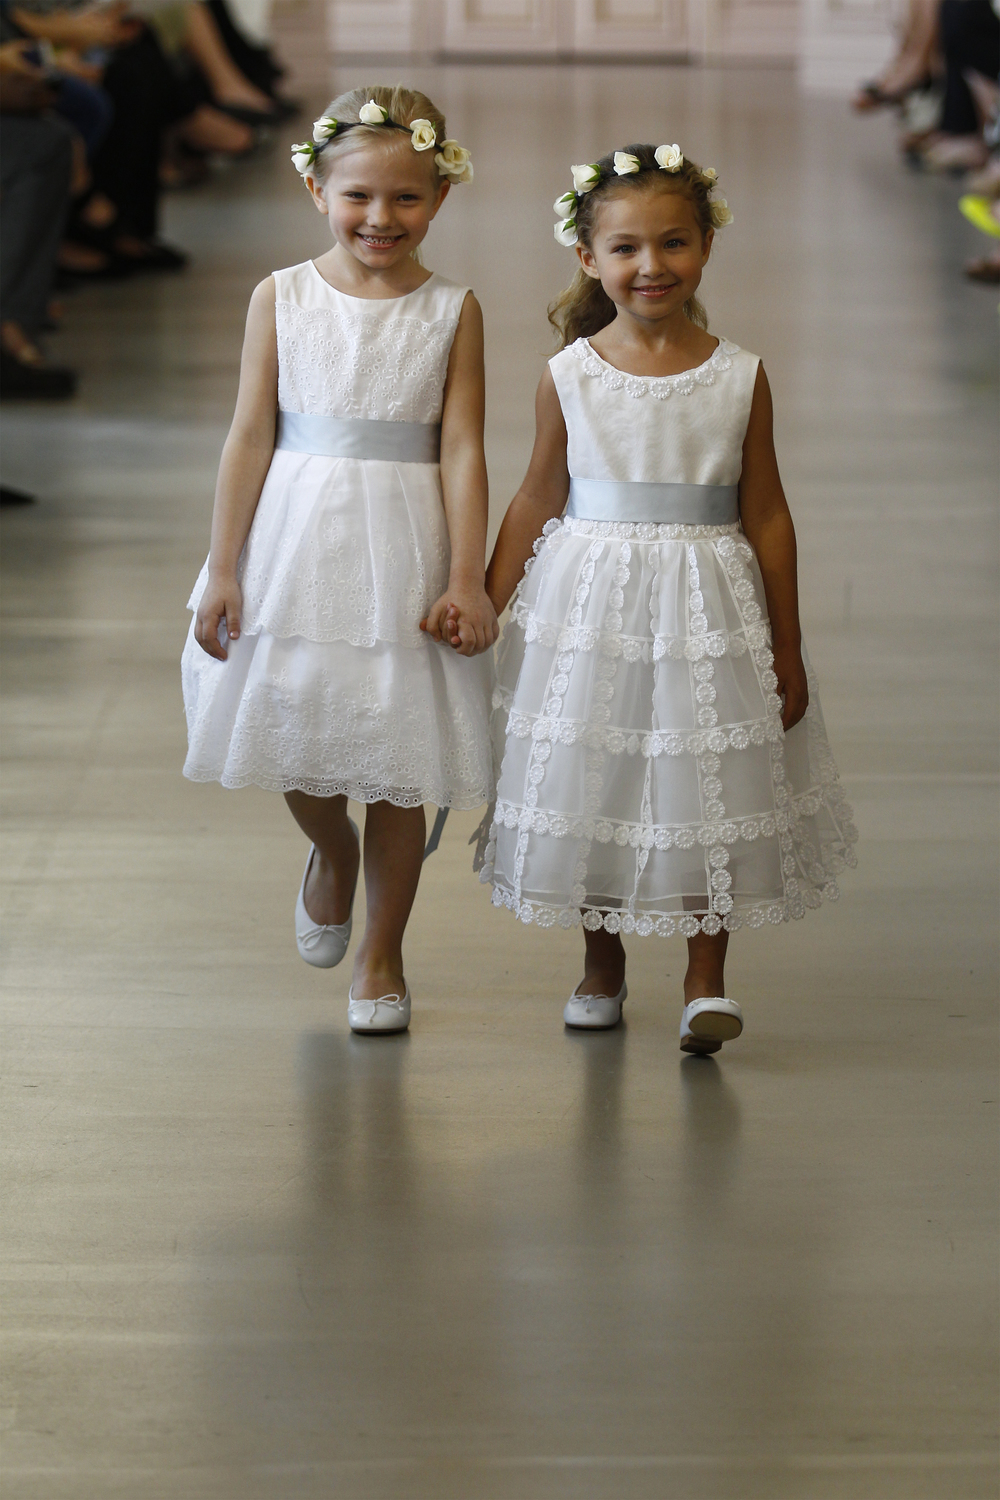 Matilda - White cotton eyelet flower girl dress with pale blue satin ribbon. White leather ballerina shoes.  Milena - Ivory silk organza flower girl dress with dotted guipure and lace trim. White leather ballerina shoes.